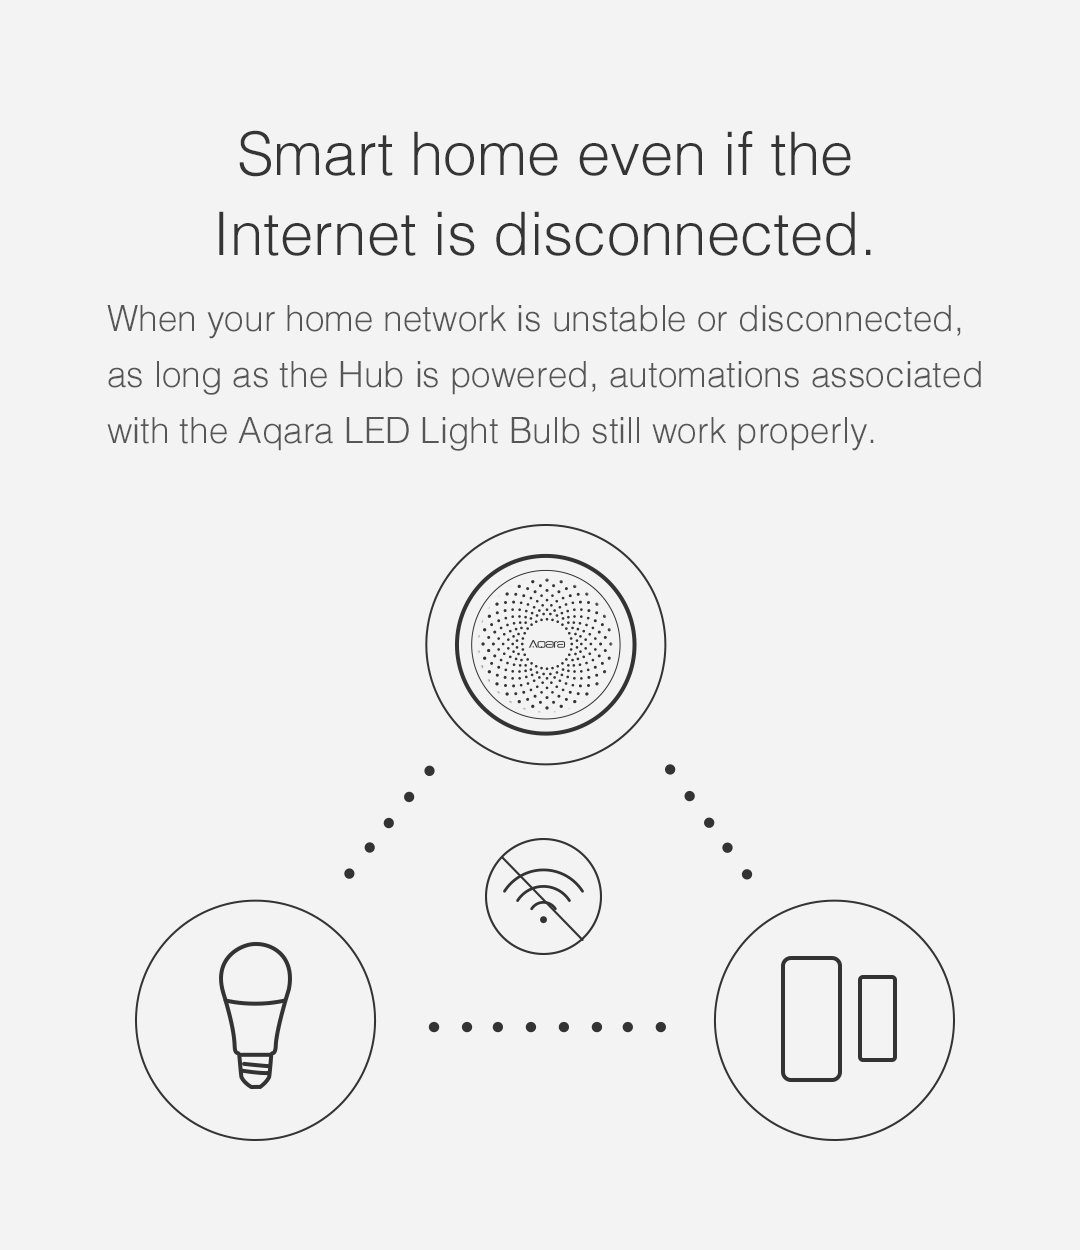 Our smart led light bulb can still work even if the wifi is disconnected